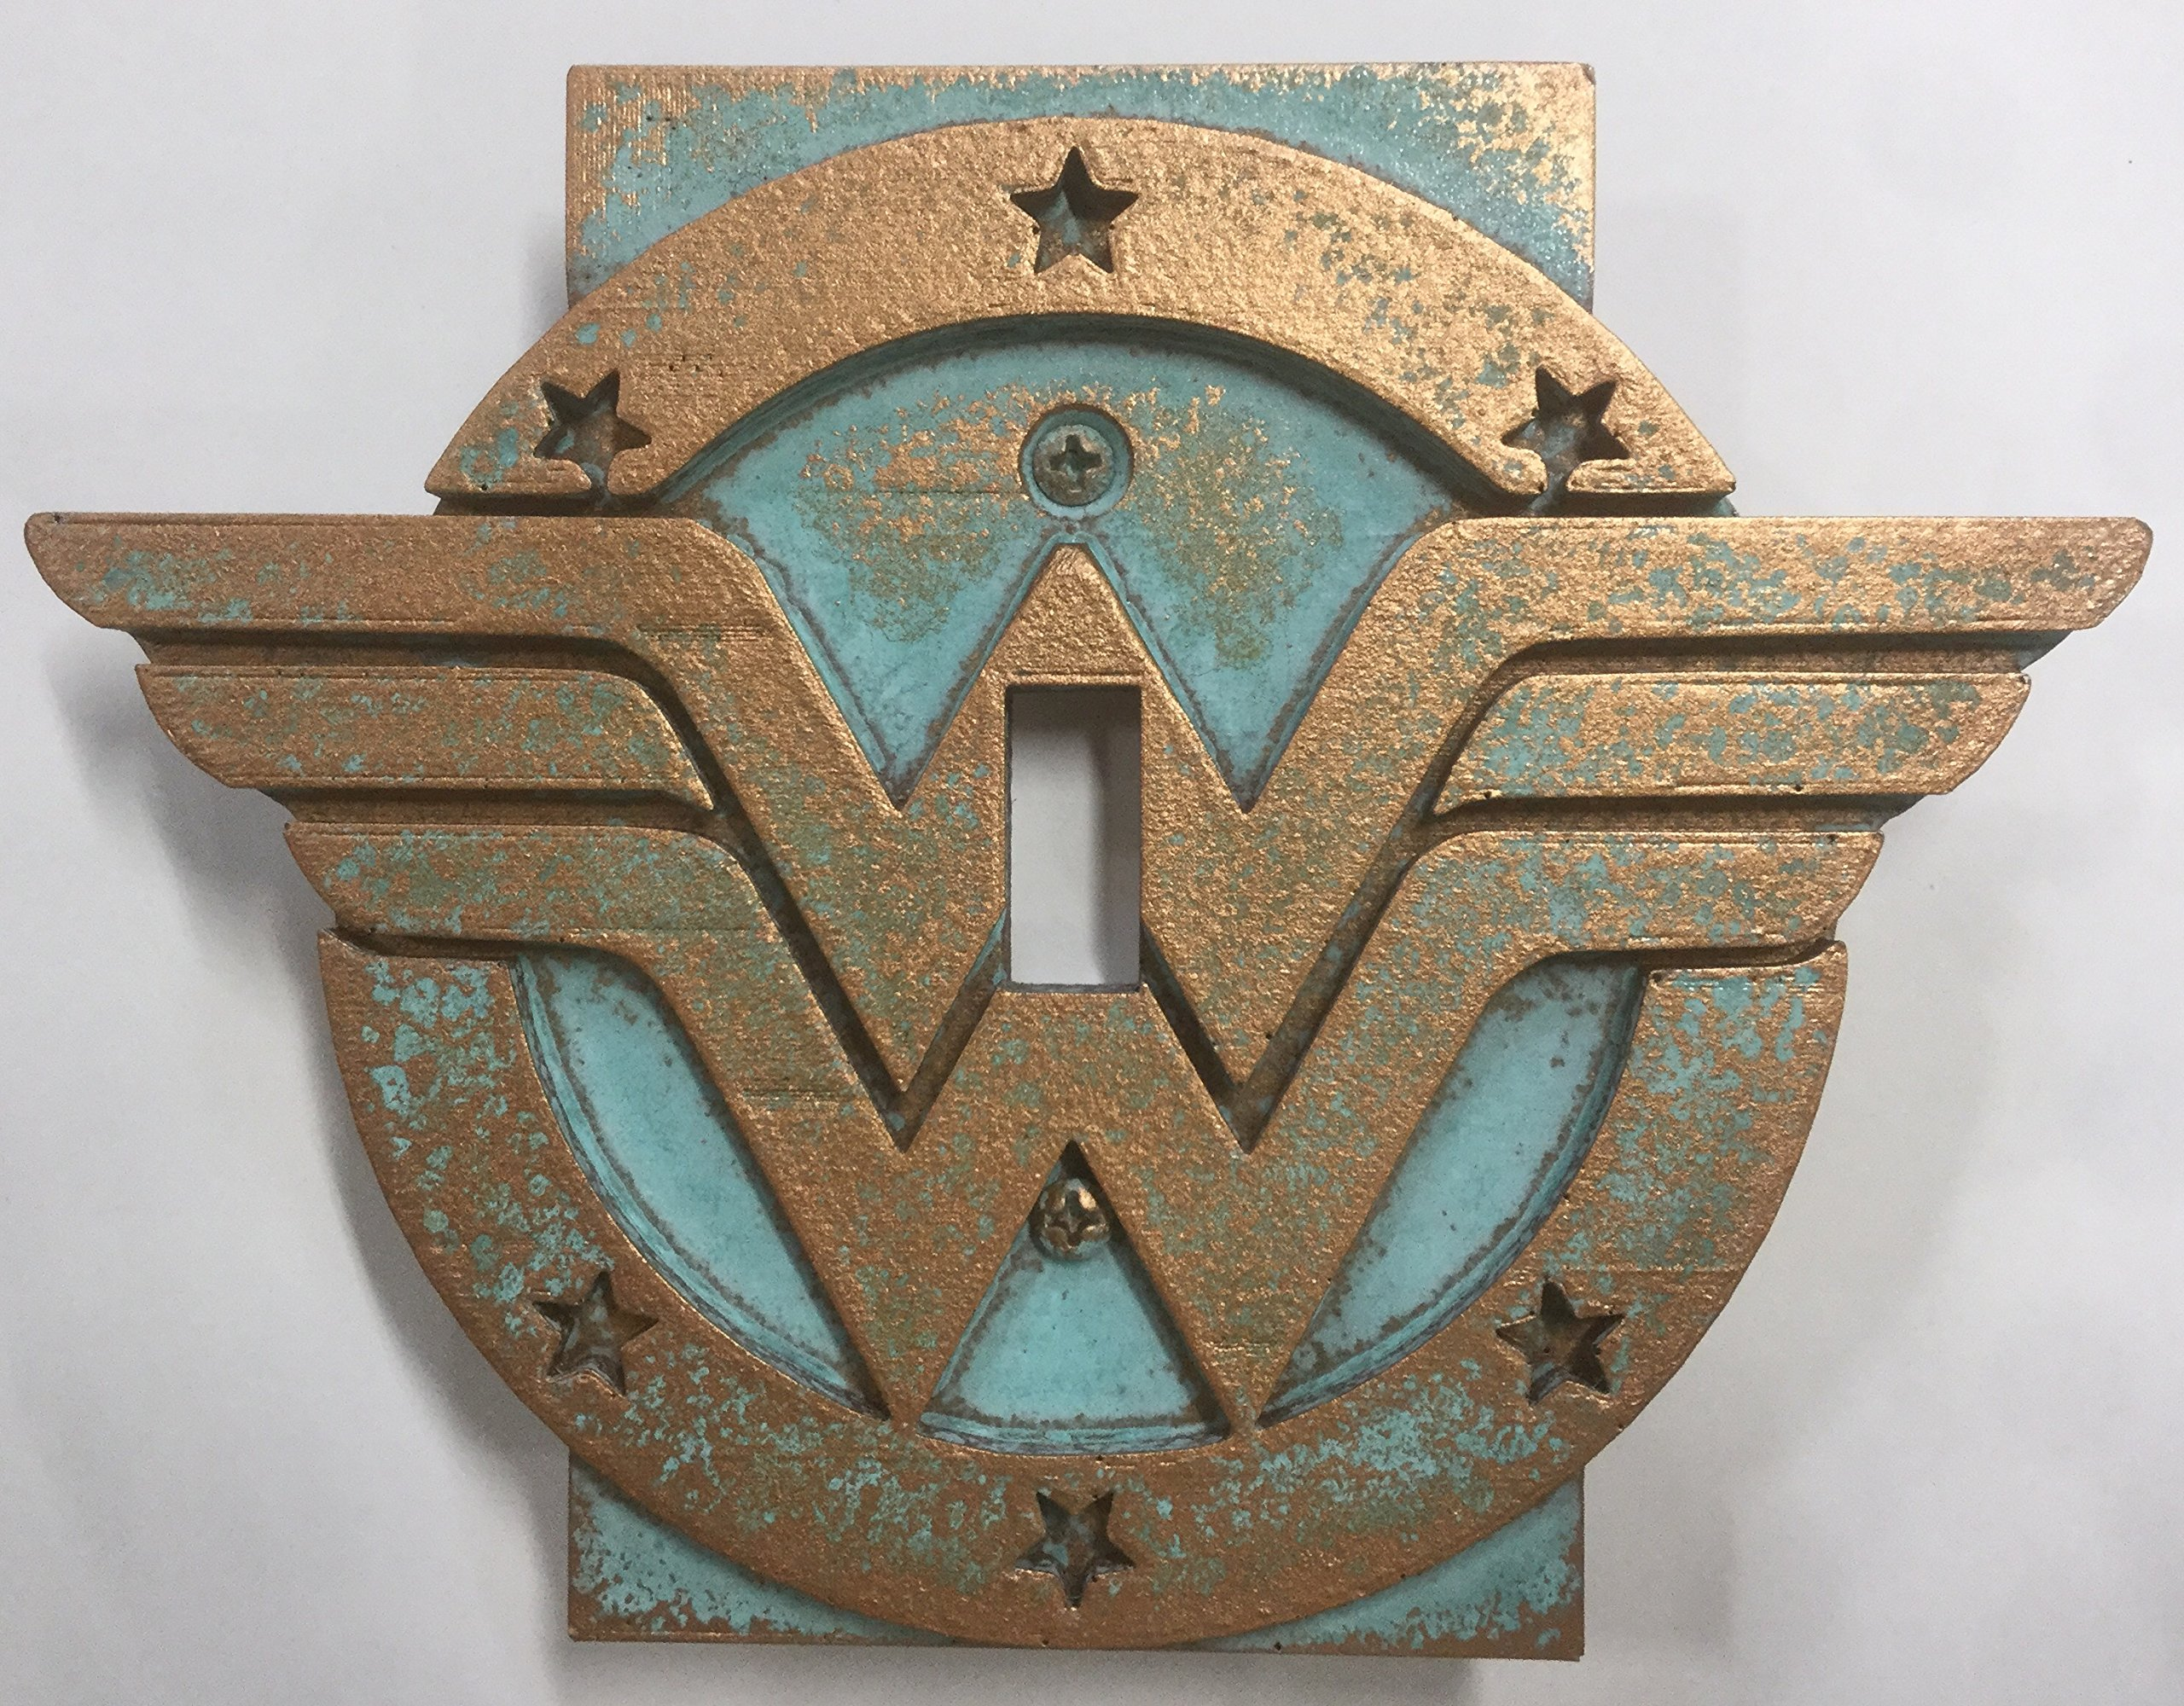 Wonder Woman - Light Switch Cover (Aged Patina) by Sci-Collectables